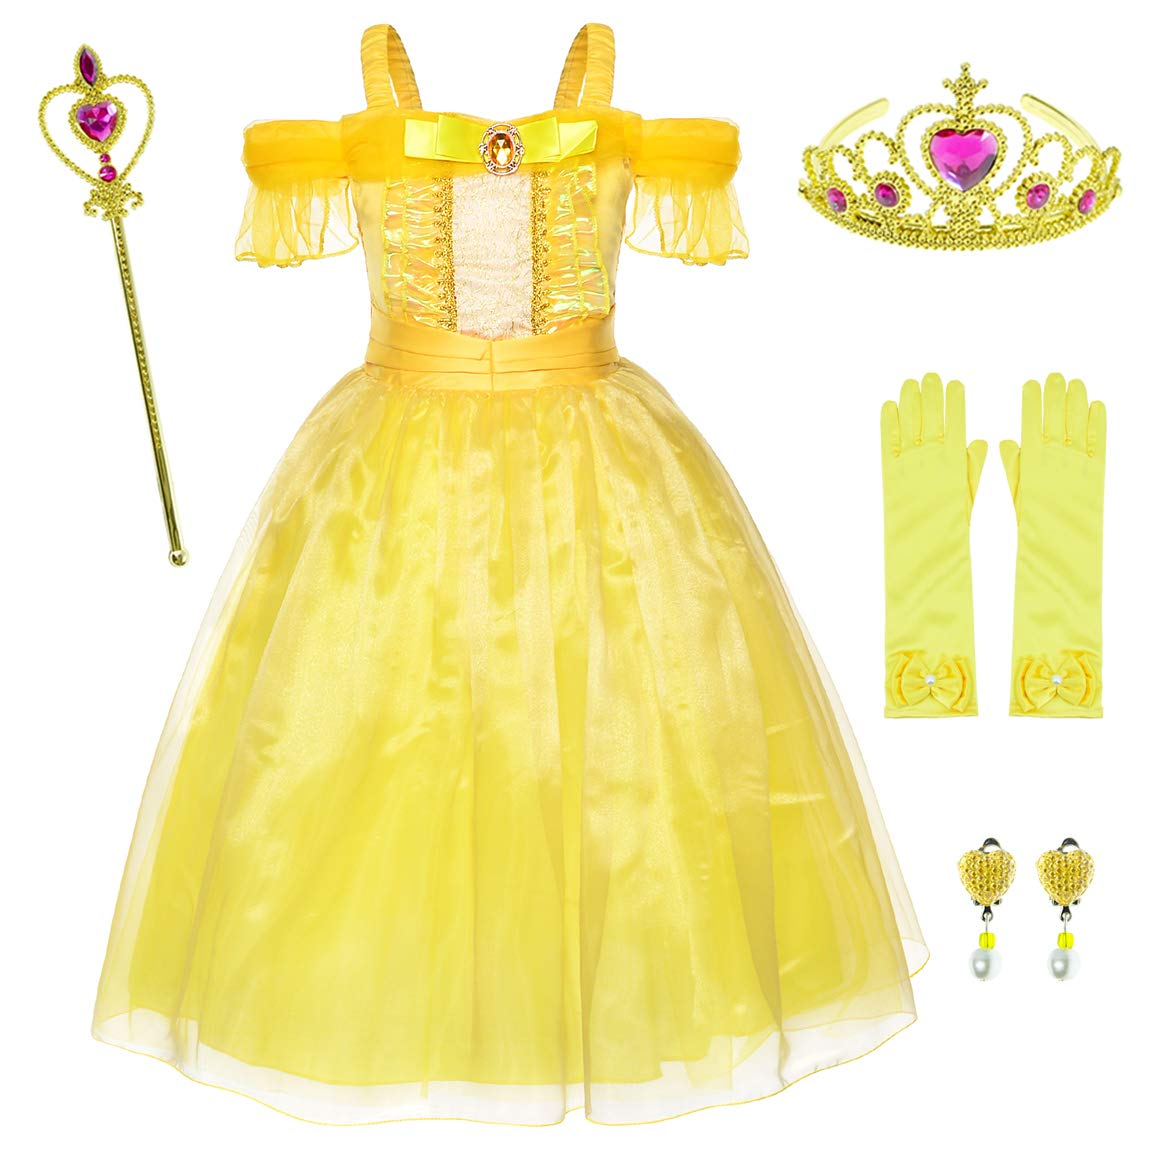 Yellow Dress Princess Belle Costume Girls Birthday Party Dress Up With Accessories 4-5 Years (Style2 110CM)